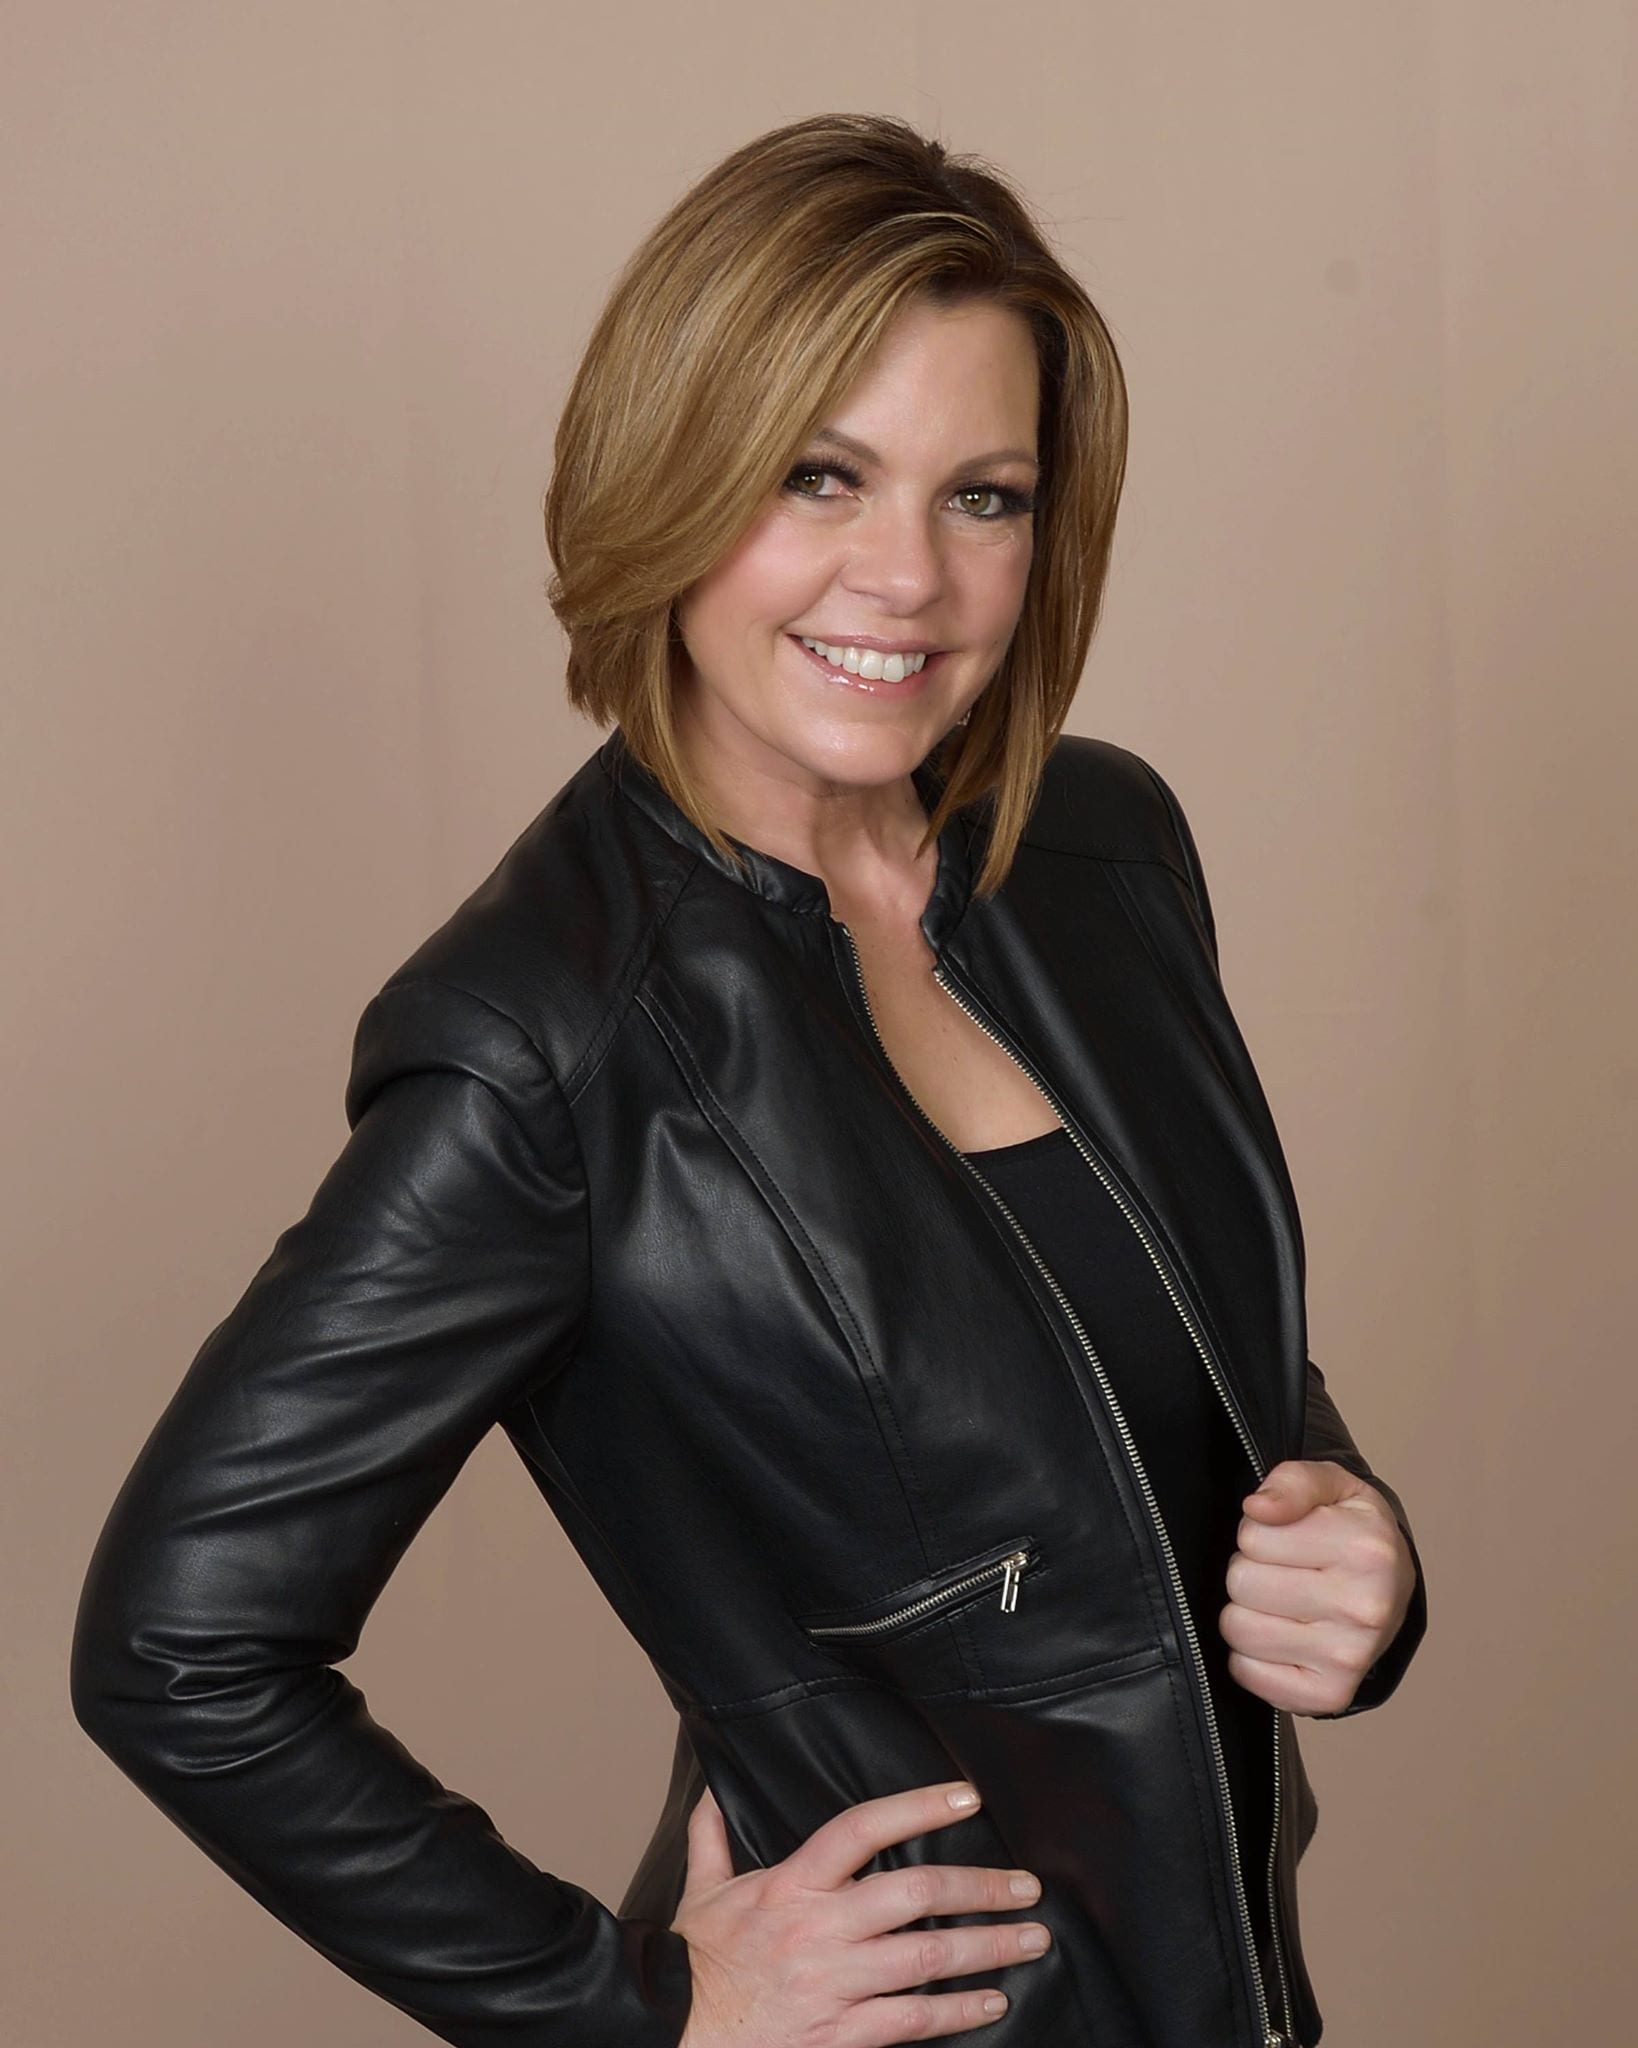 Lori Ballen is standing with a smile and holding on to her leather jacket